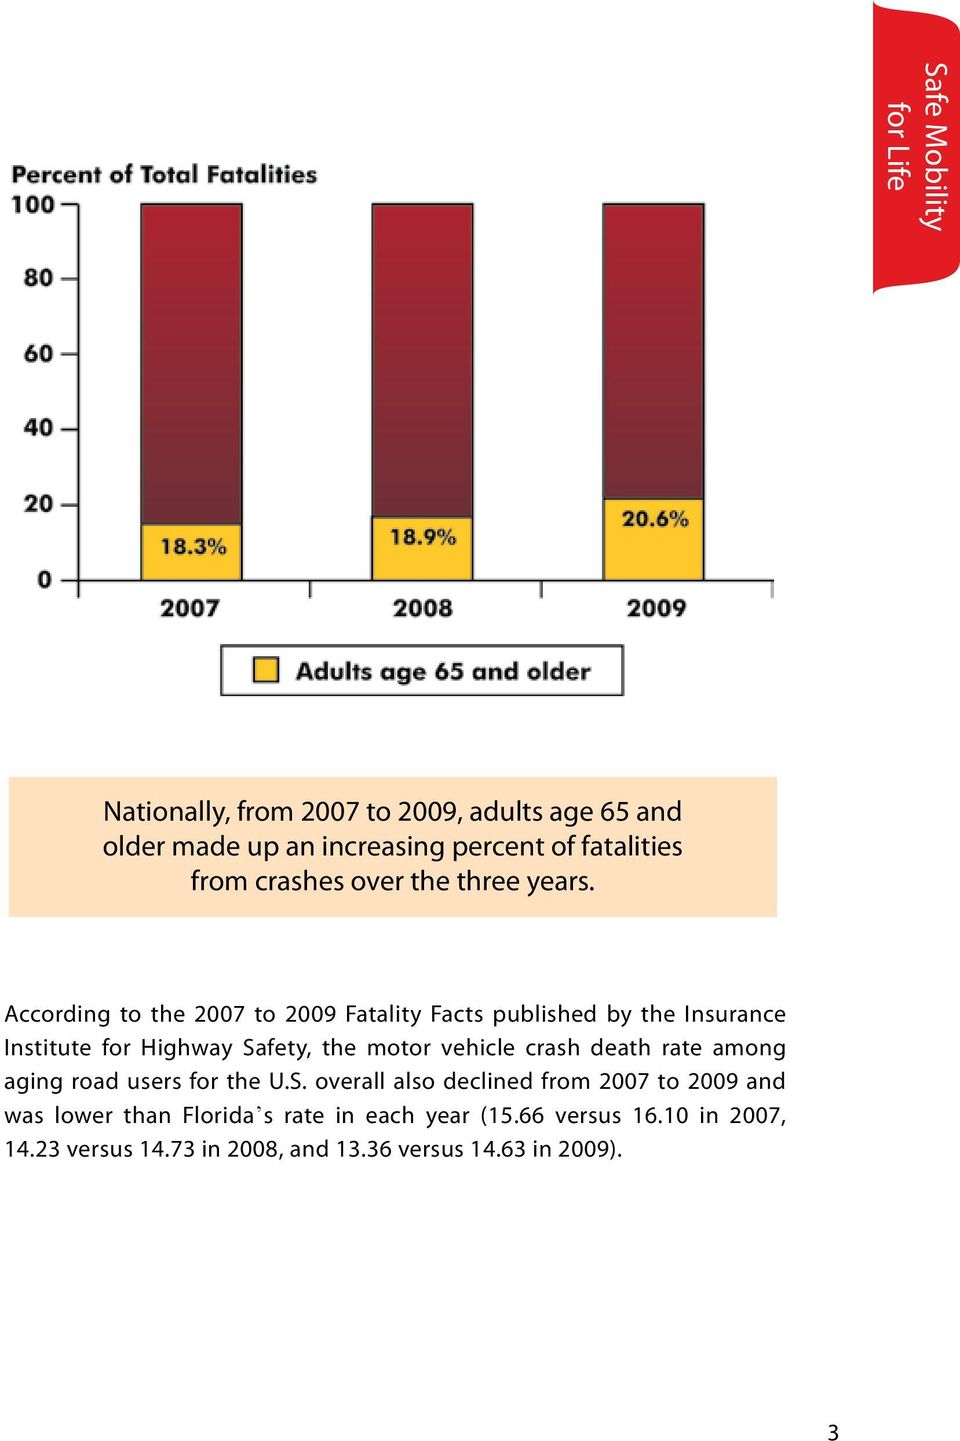 According to the 2007 to 2009 Fatality Facts published by the Insurance Institute for Highway Safety, the motor vehicle crash